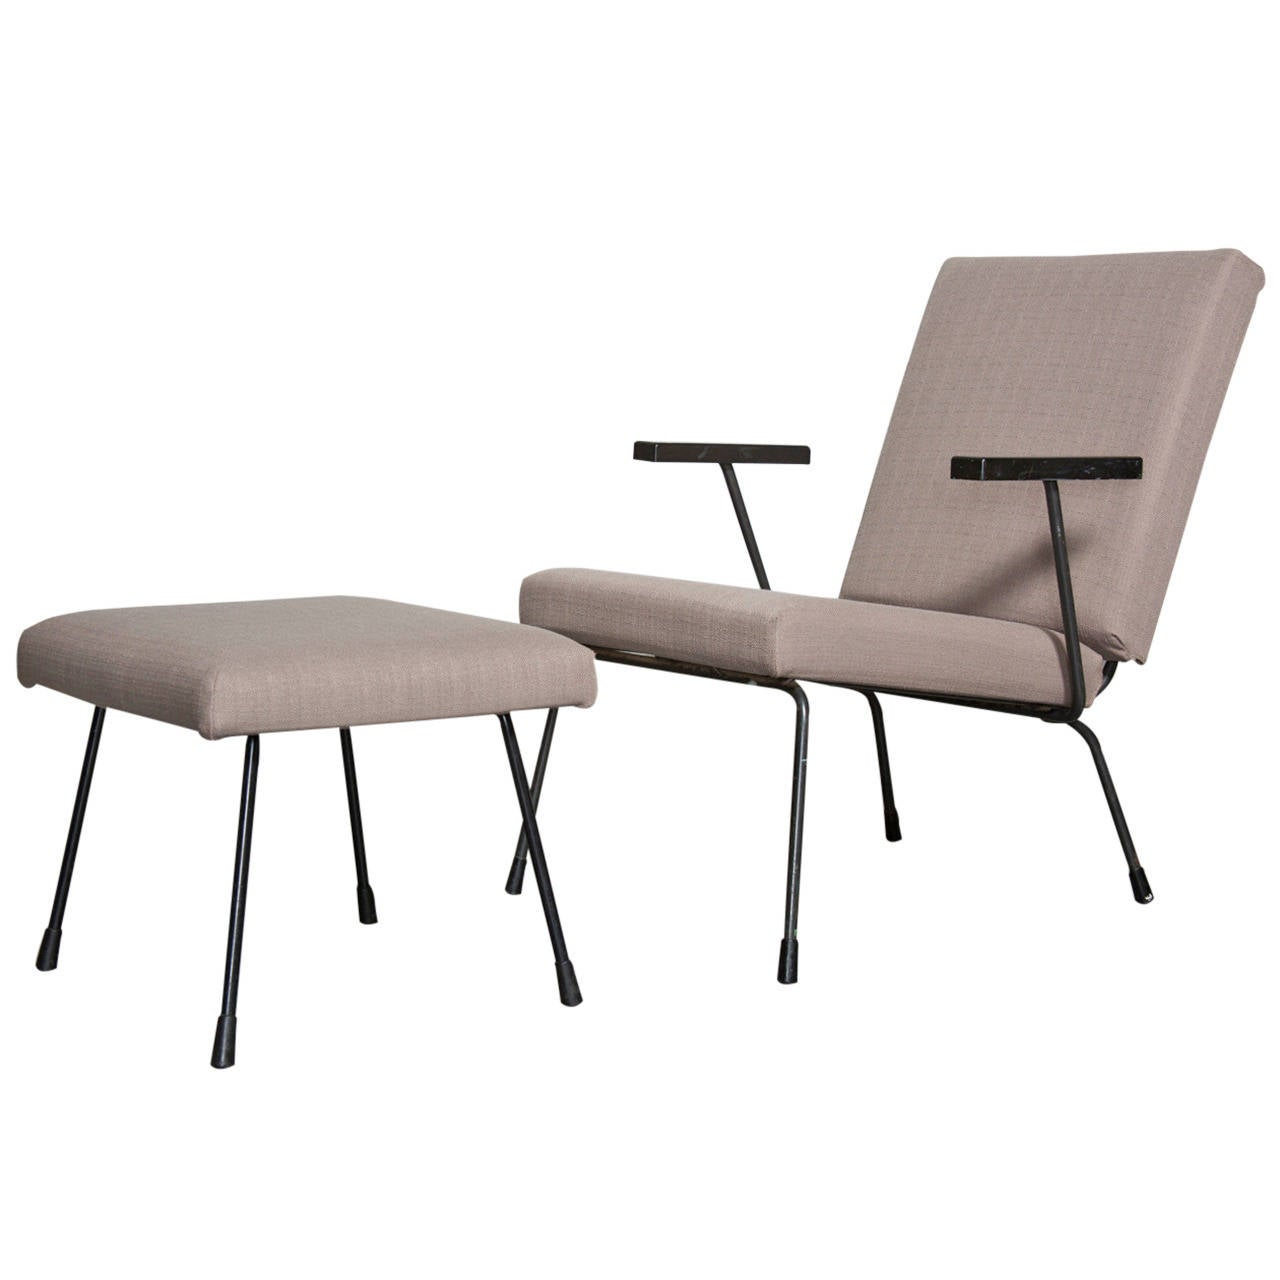 Wim Rietveld 1407 Lounge Chair and Matching Ottoman for Gispen